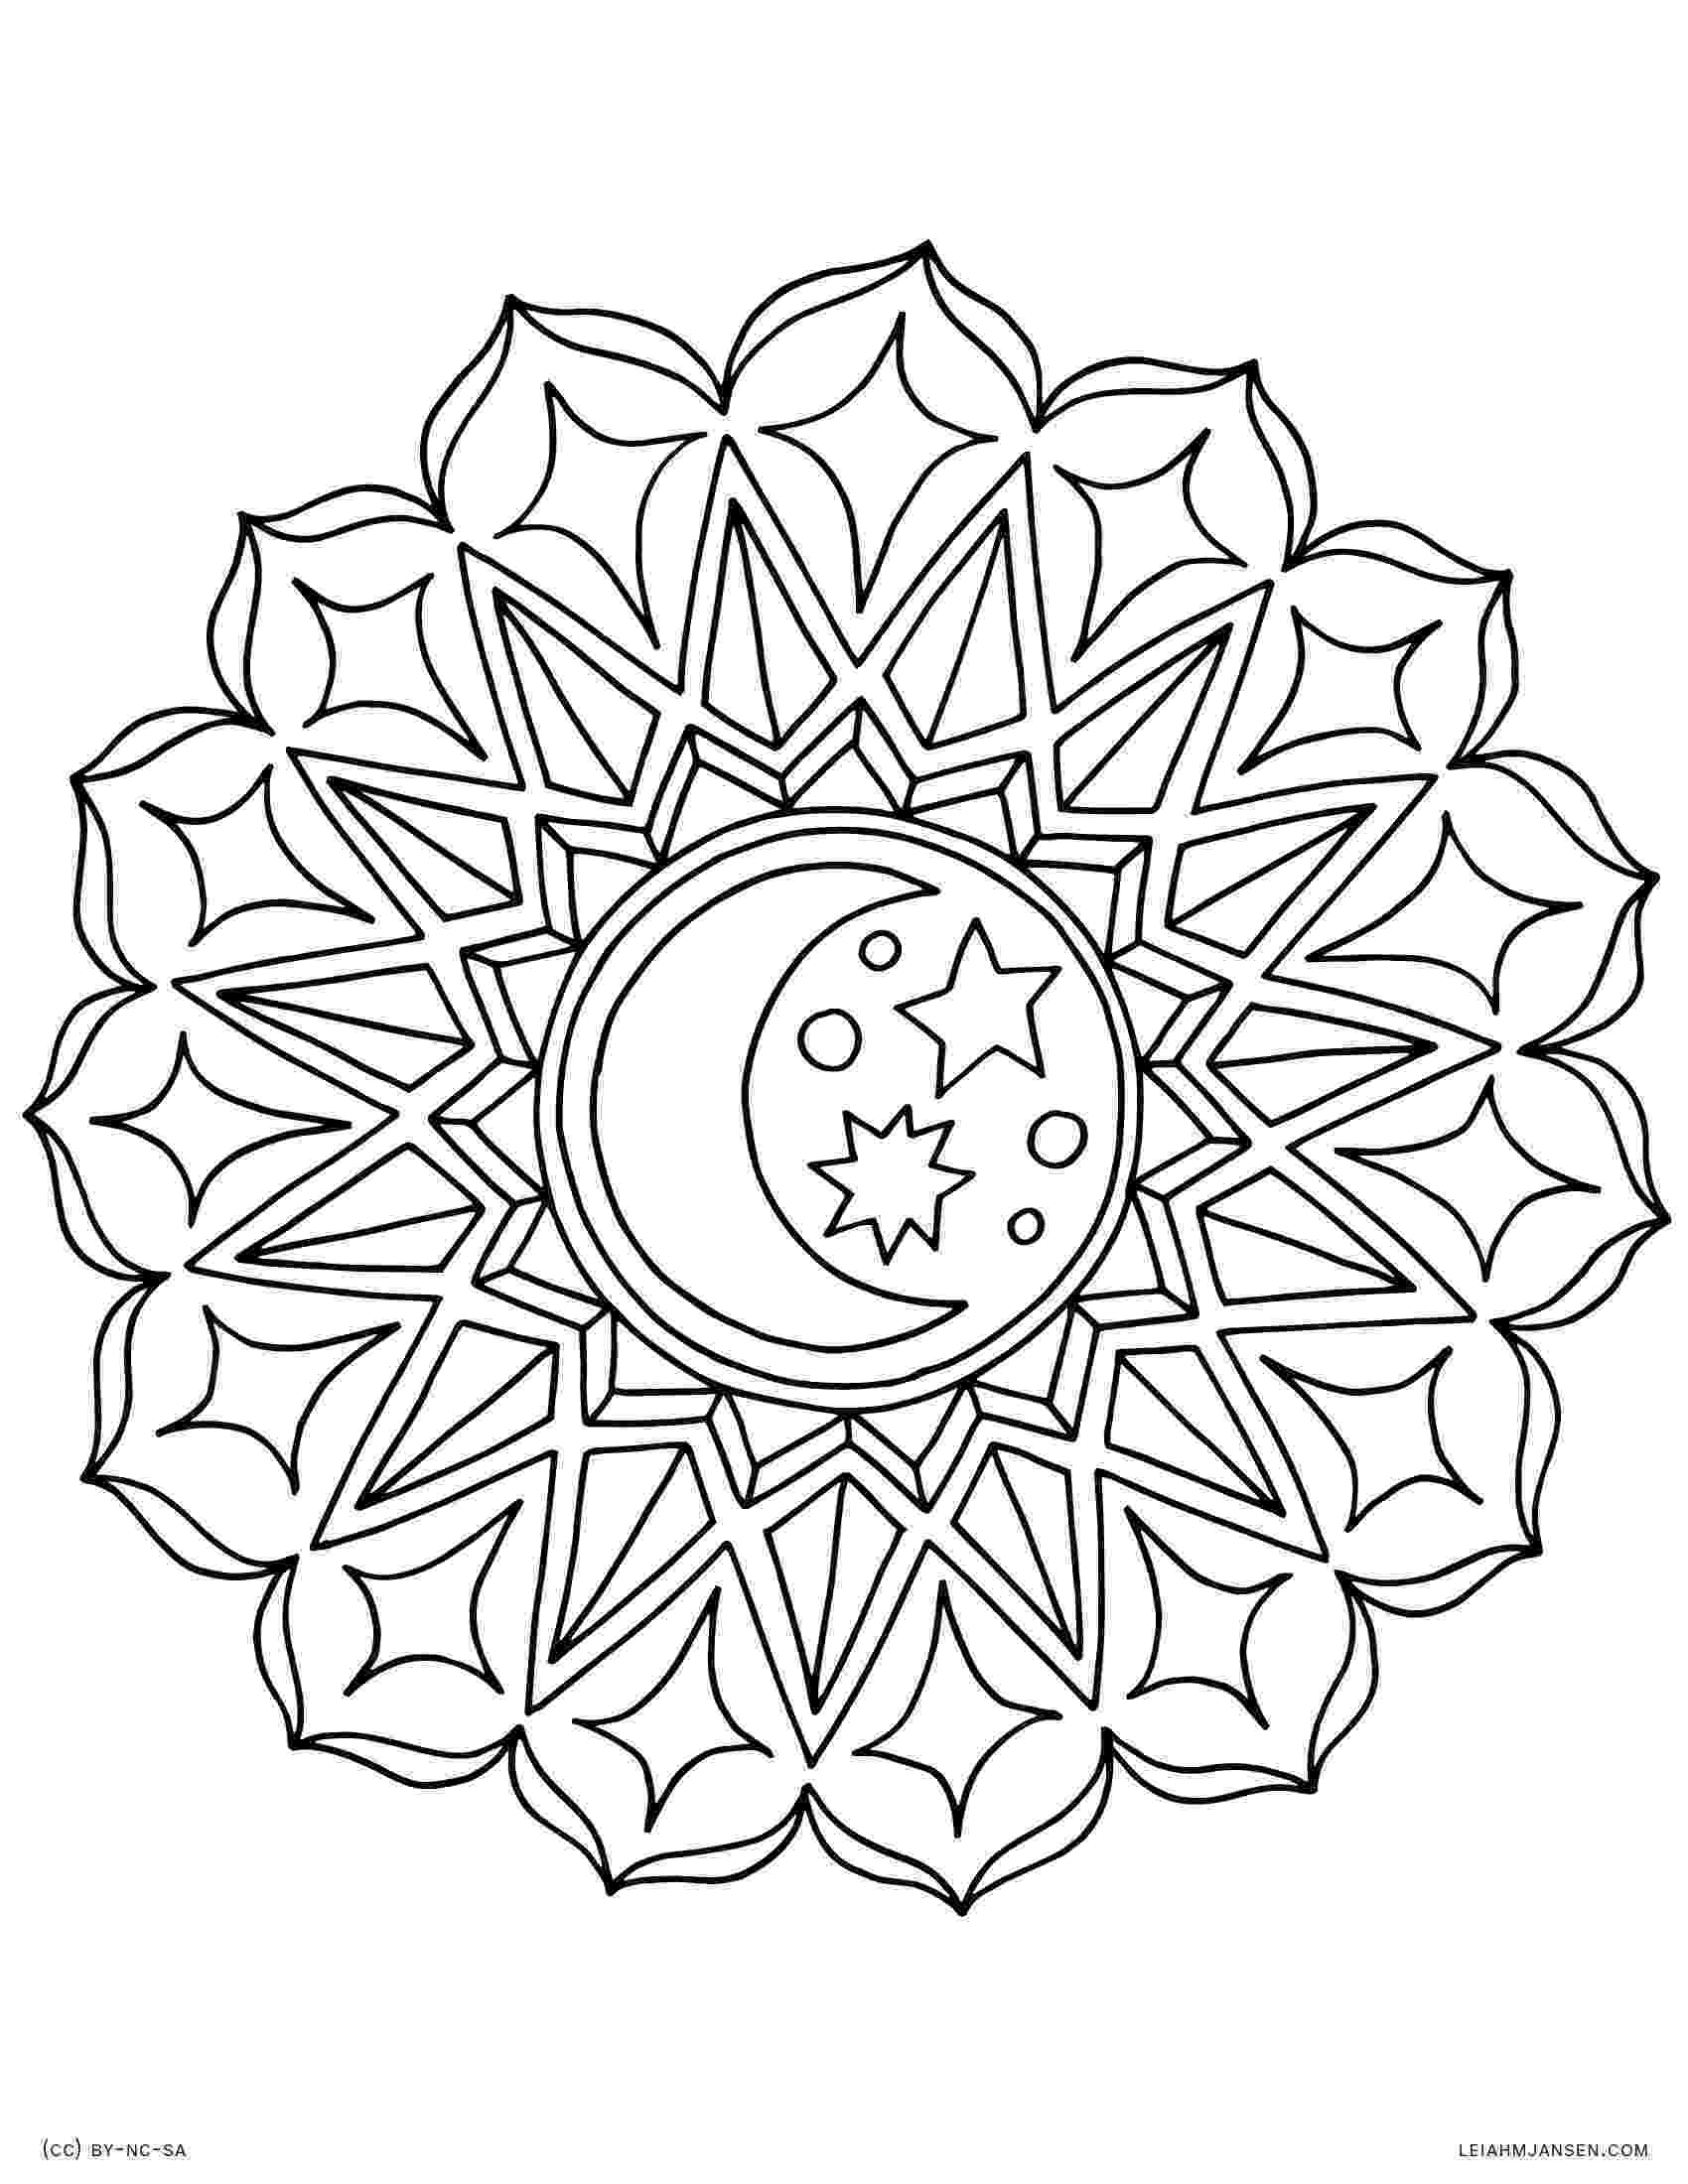 mandala free printable 29 intricate mandala coloring pages collection coloring mandala printable free